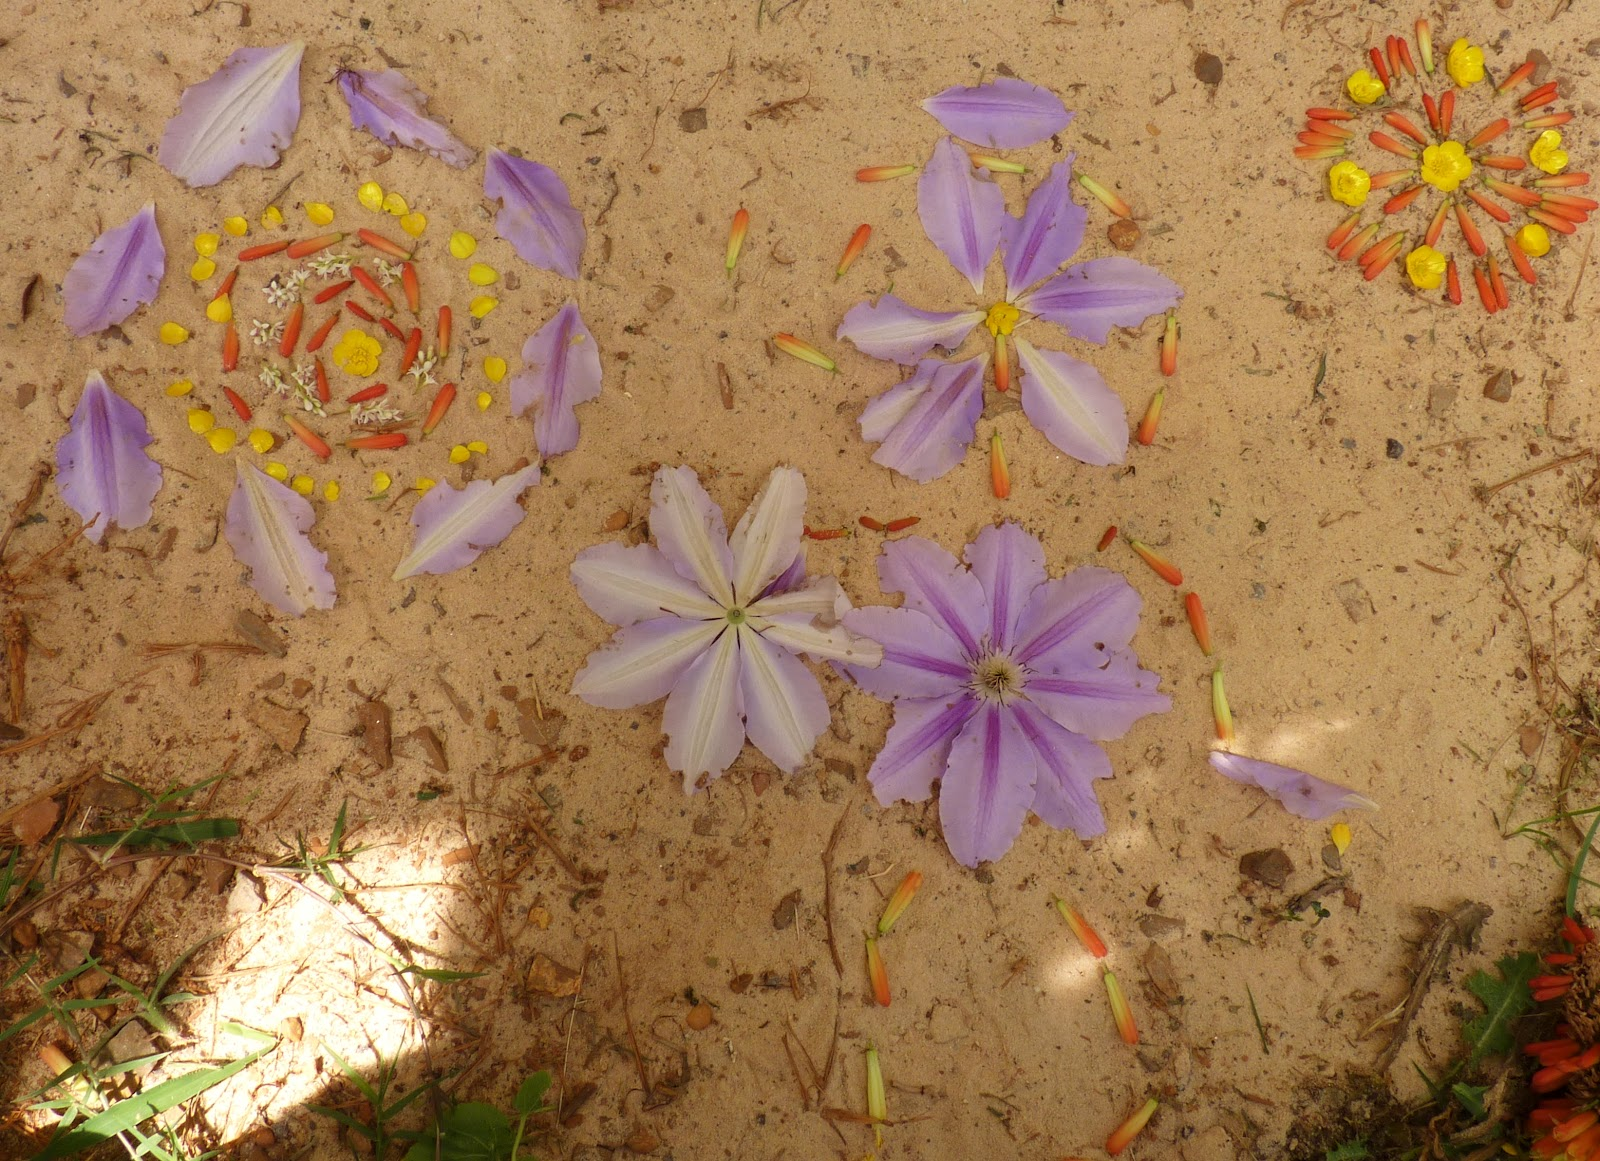 At the Butterfly Ball Flower Mandalas with Kids